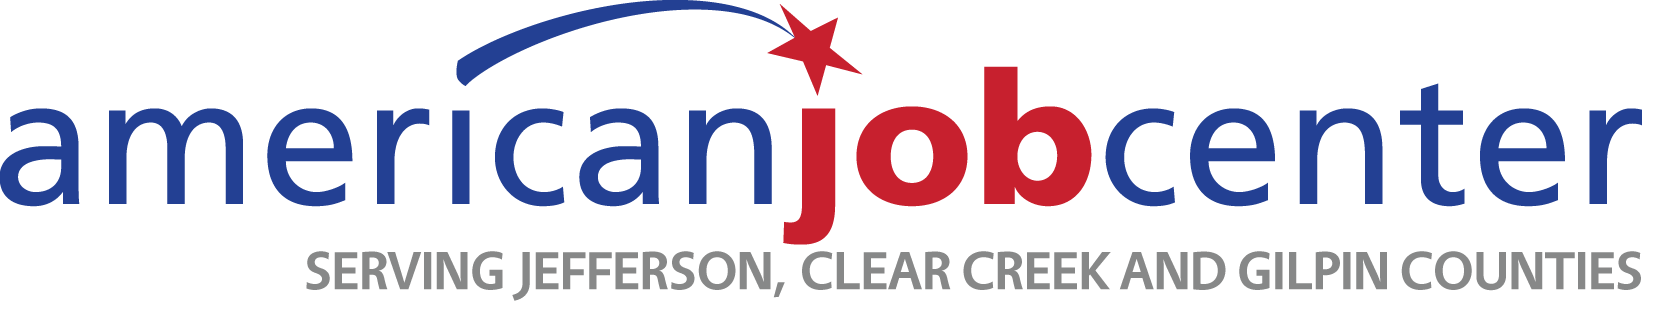 Link to Jeff Co American Job Center